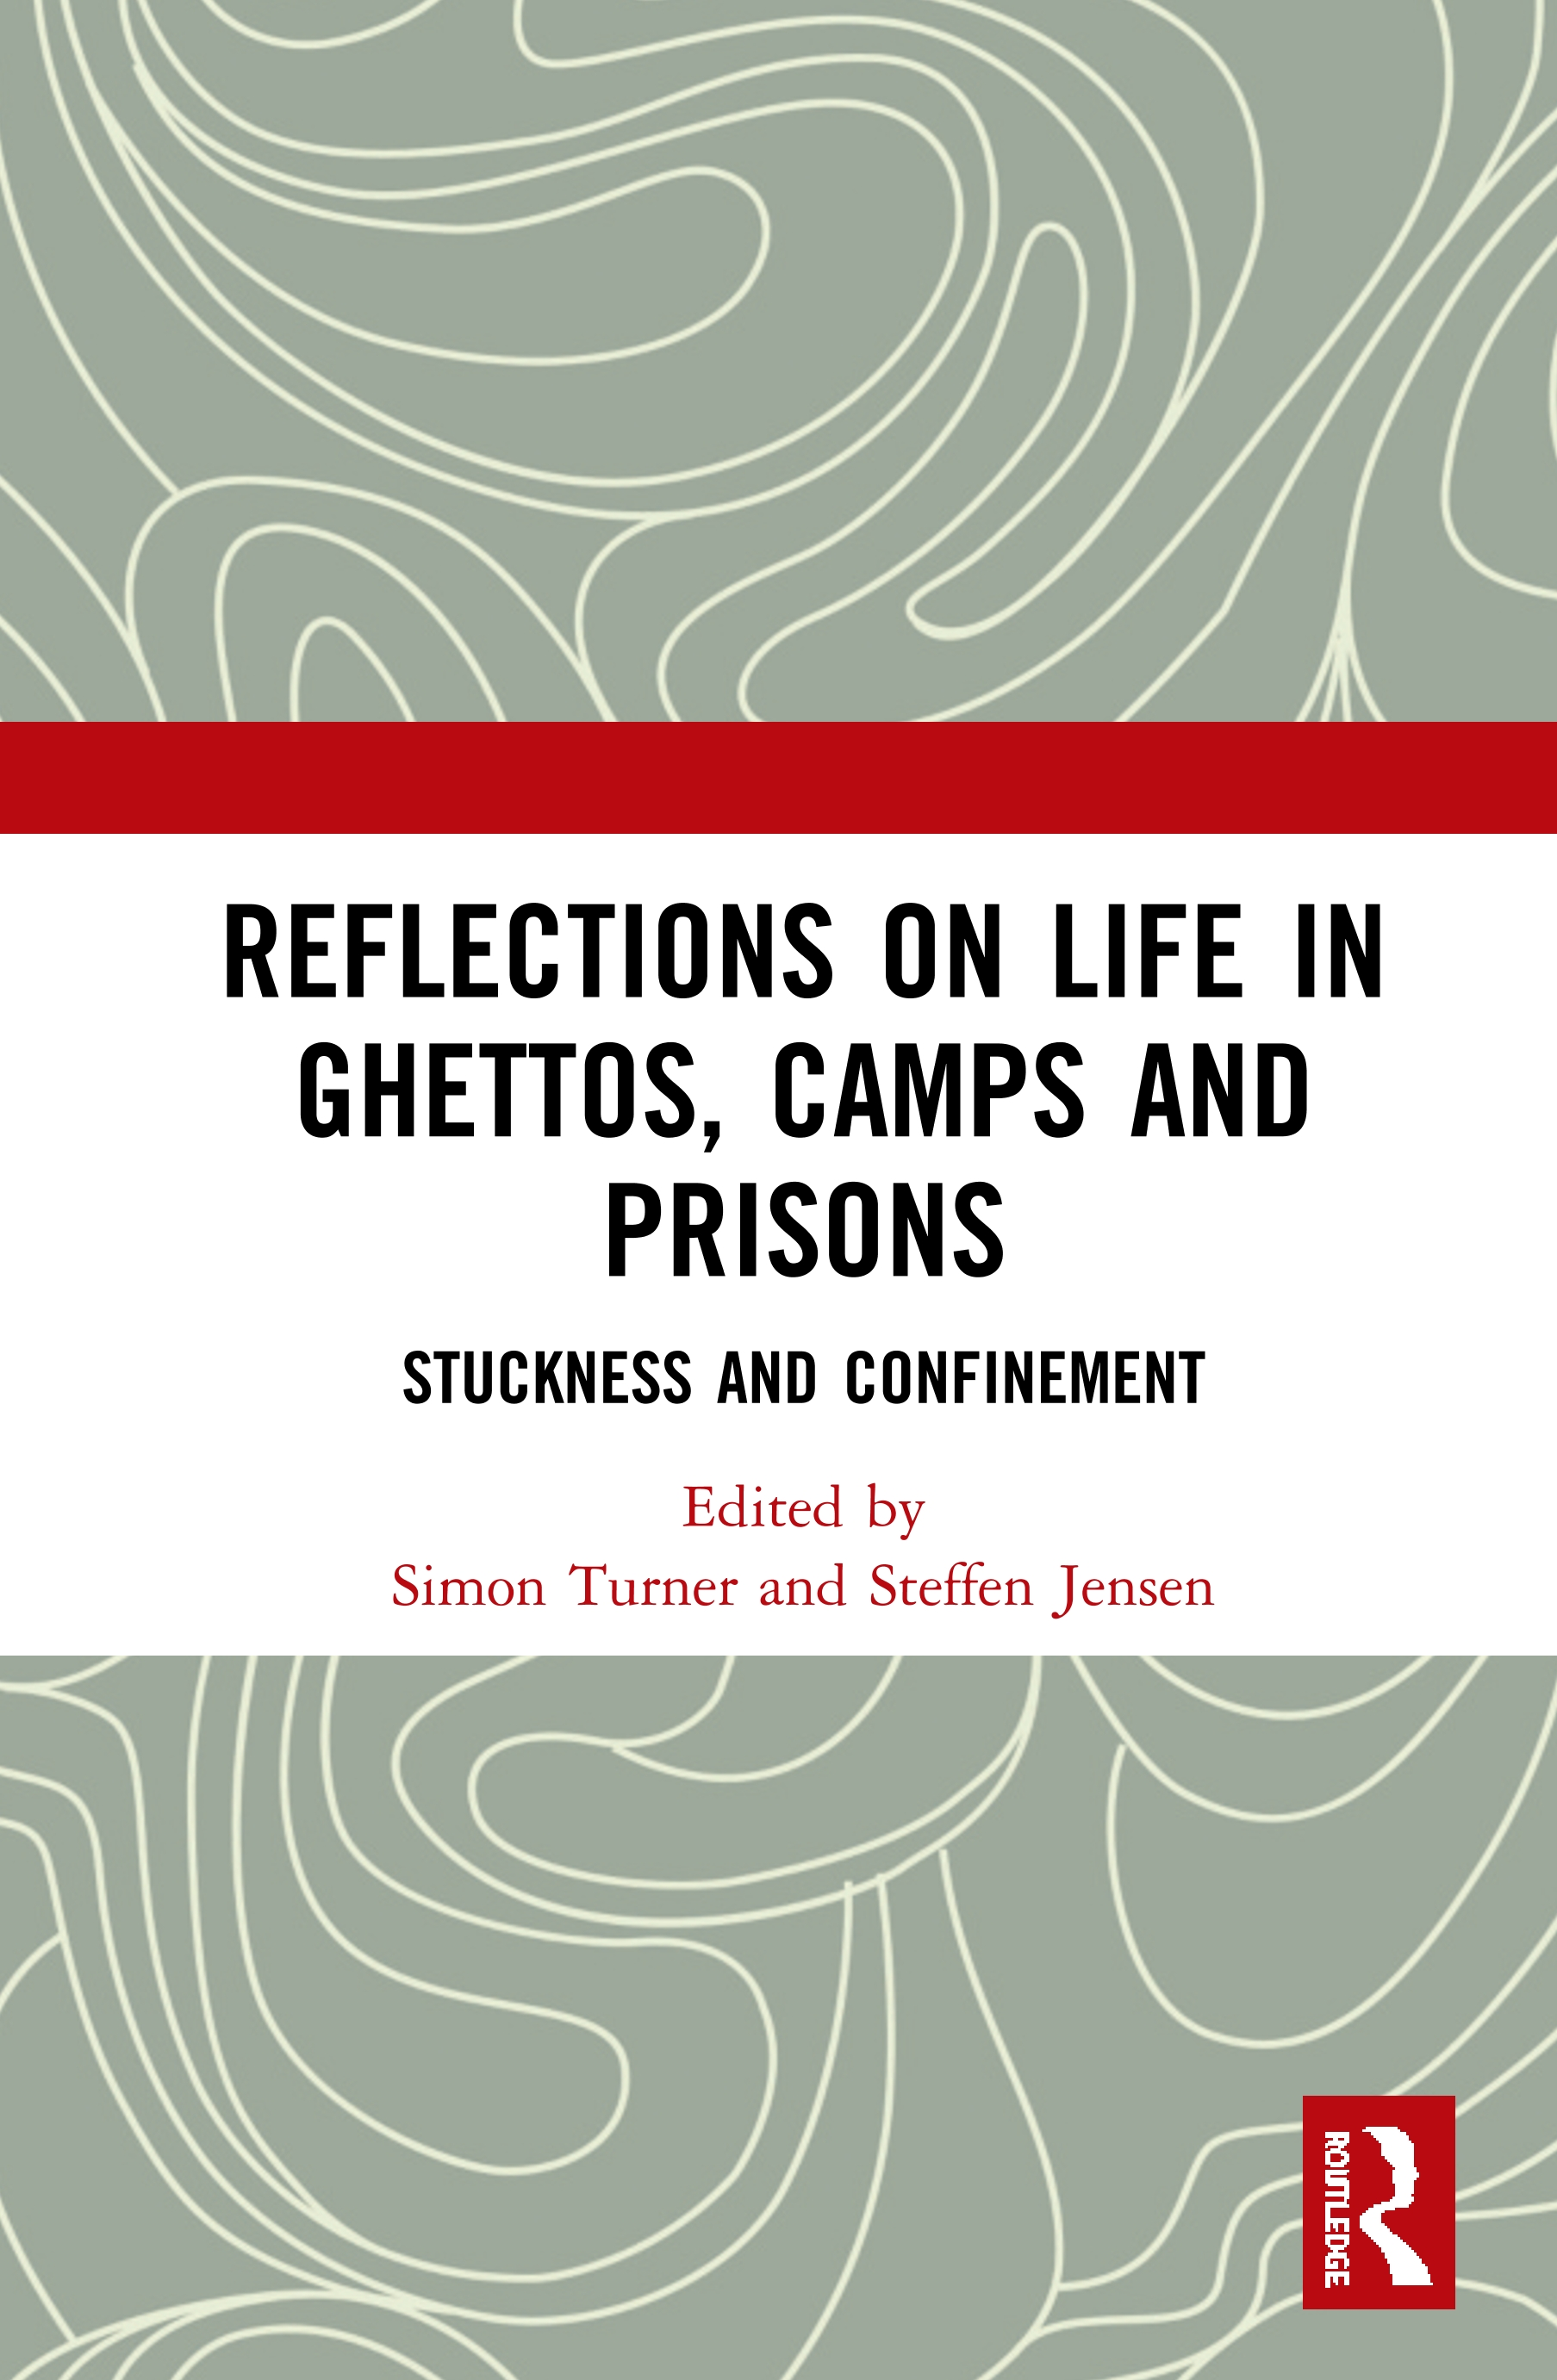 Reflections on Life in Ghettos, Camps and Prisons: Stuckness and Confinement book cover